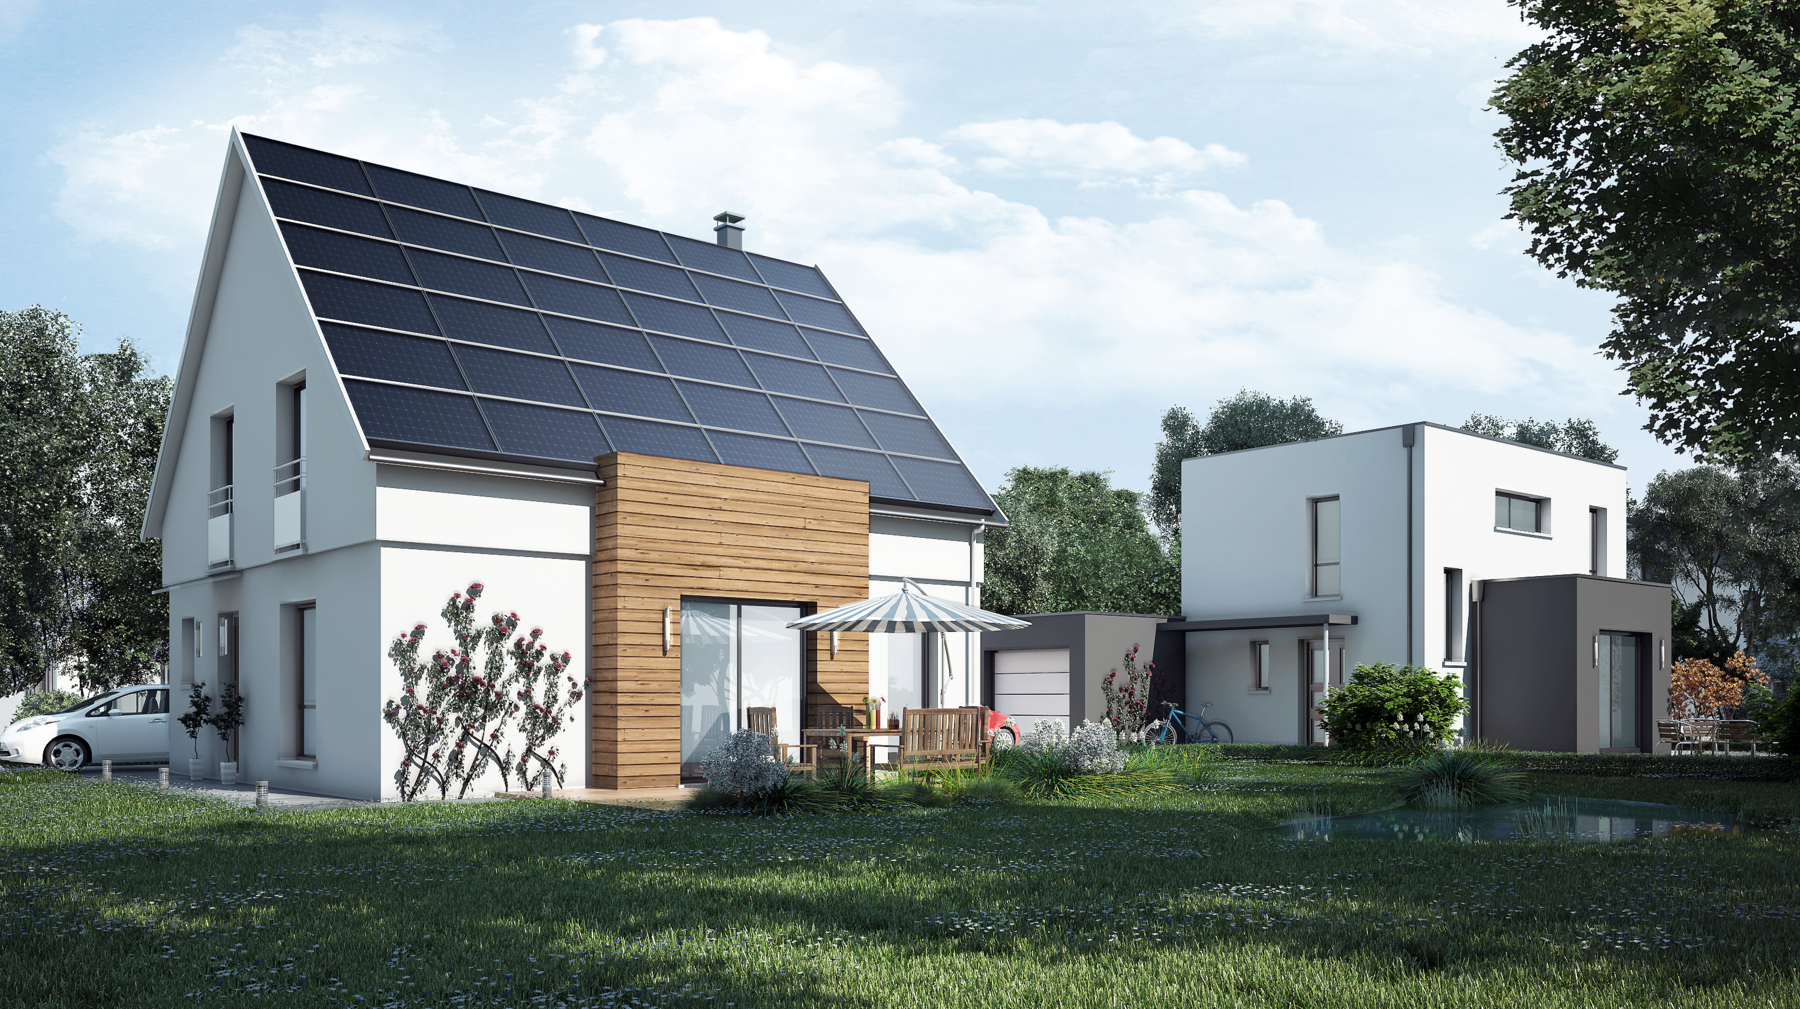 Architecture project 39 image for Tarif maison individuelle